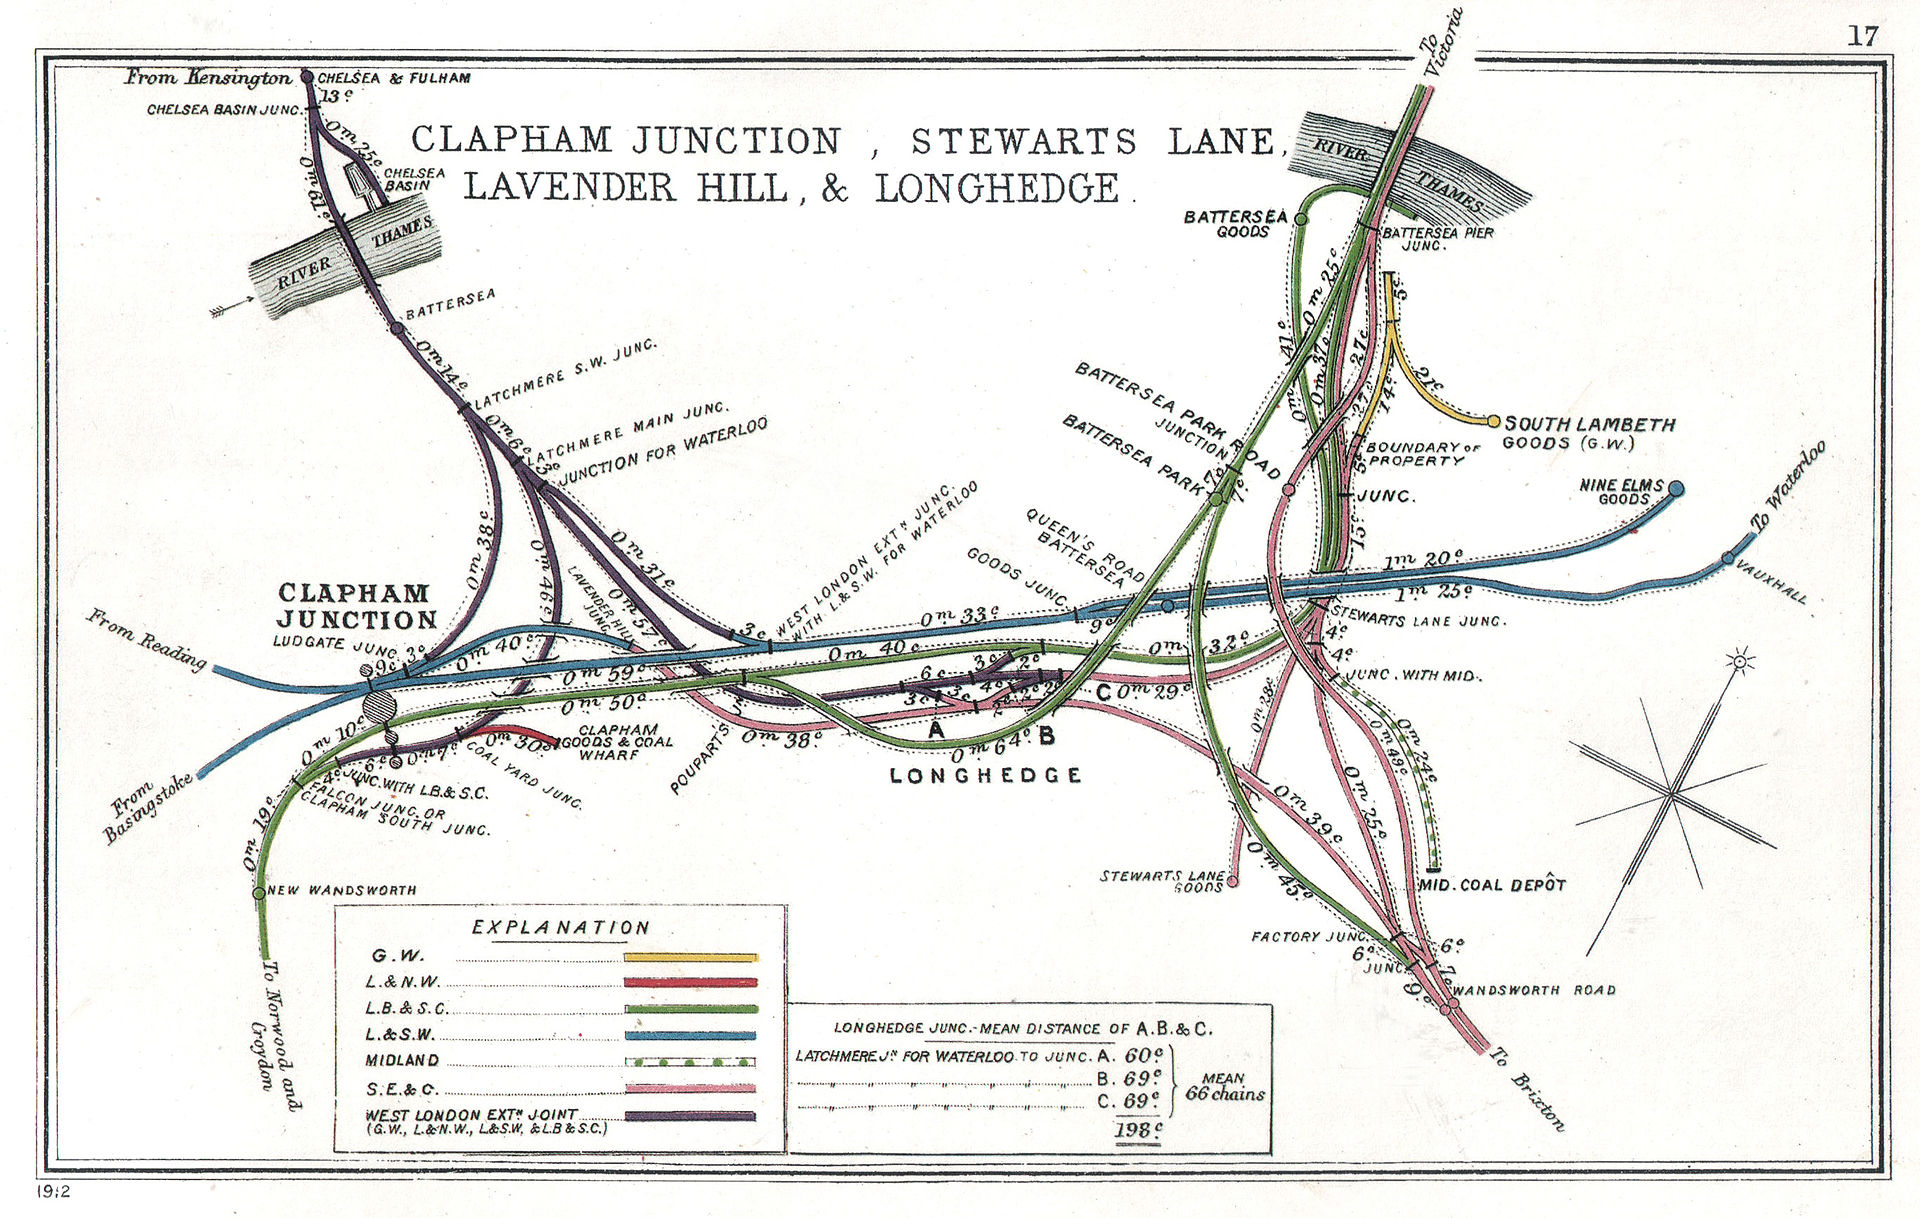 Plan of Clapham Junction, 1912